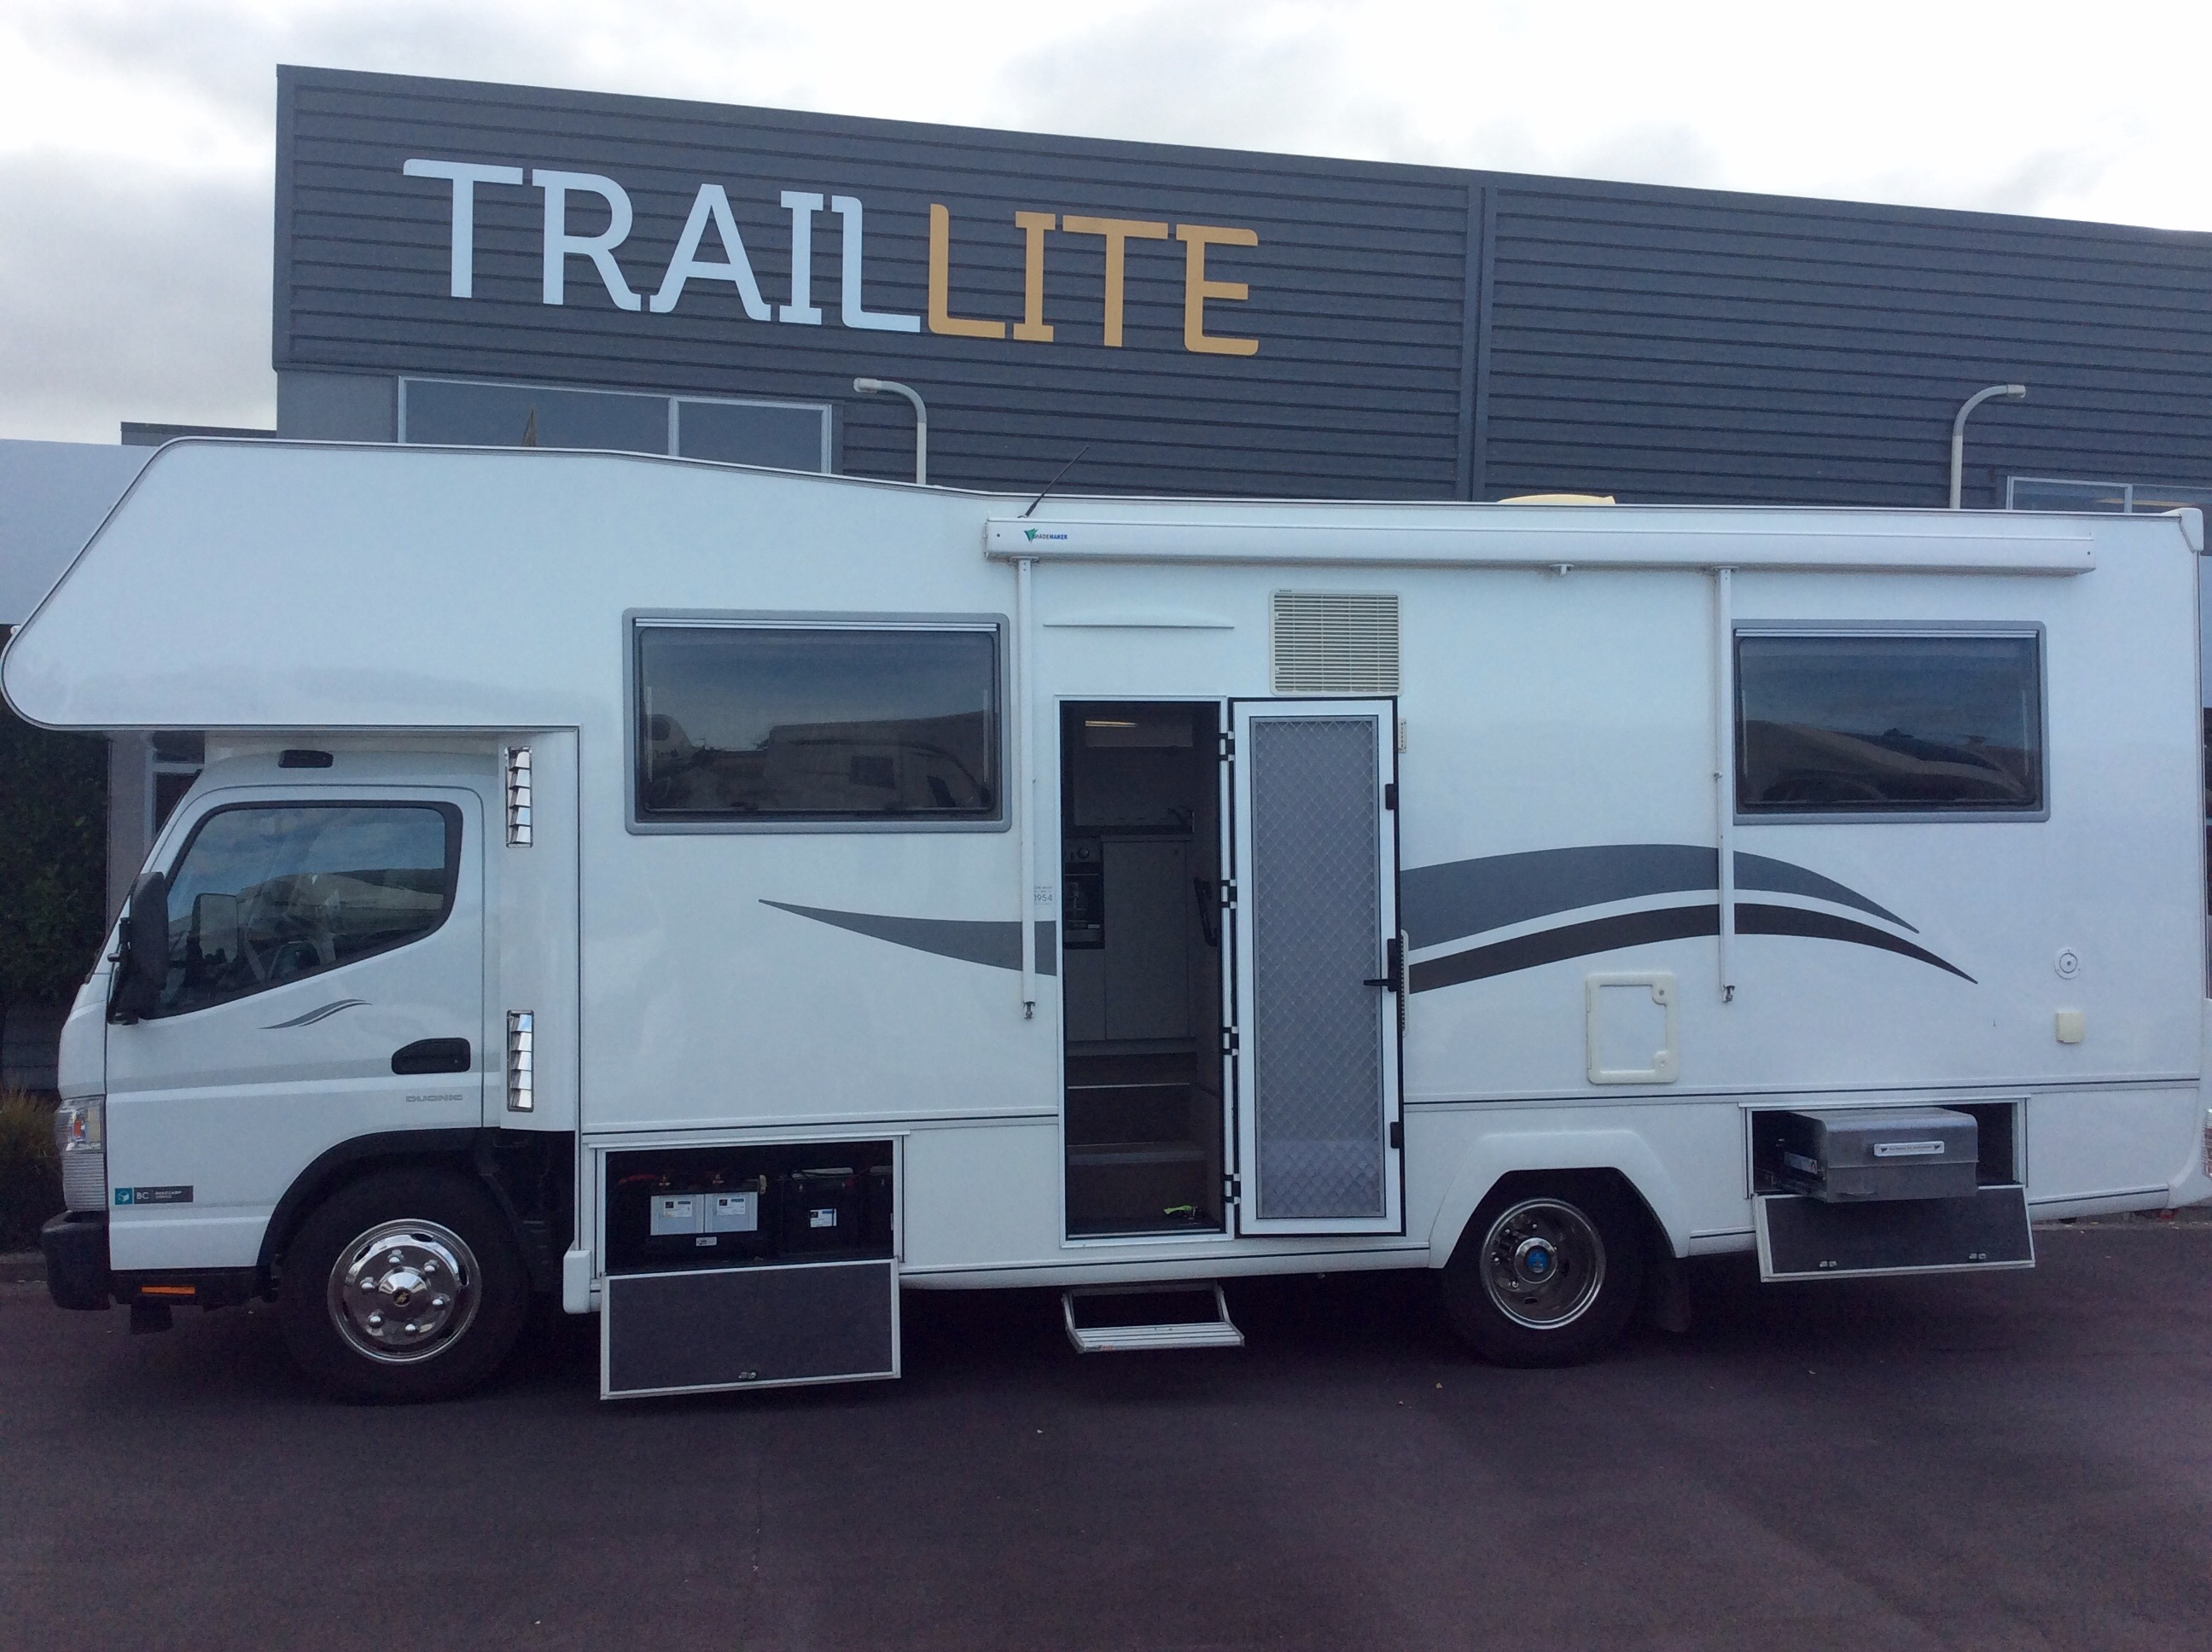 Selling your motorhome or caravan what you can expect to get for it